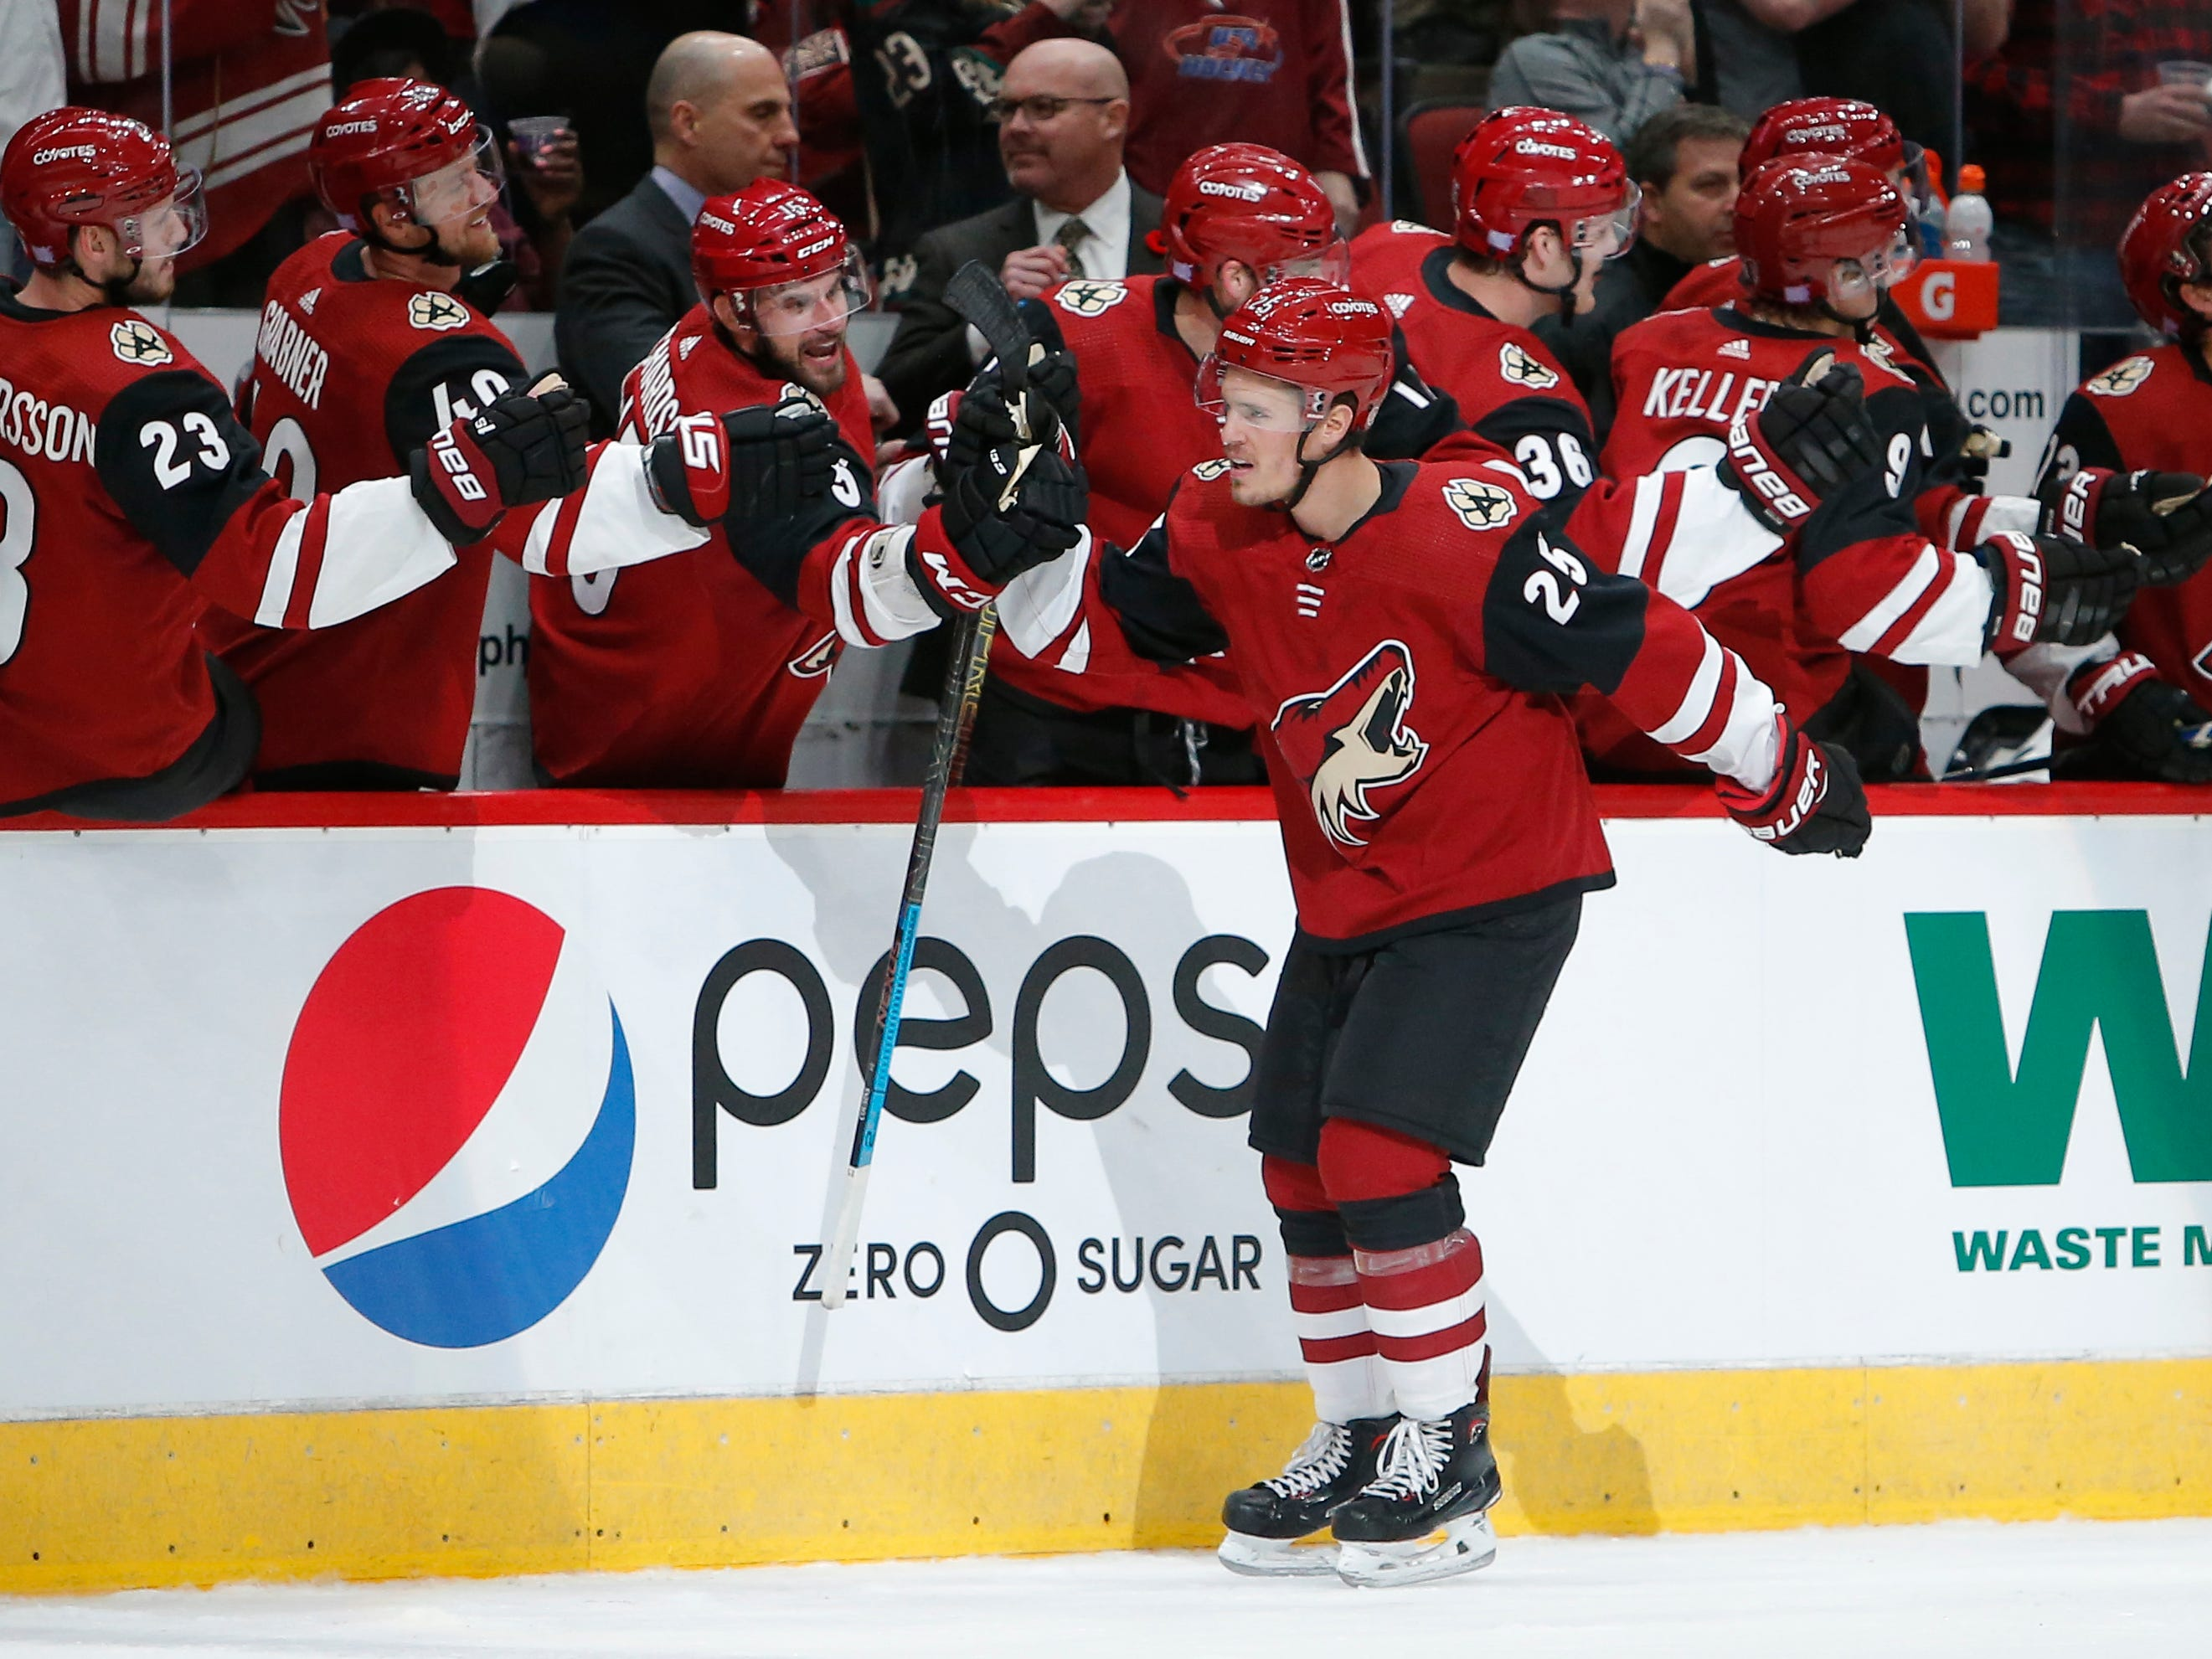 Arizona Coyotes center Nick Cousins (25) celebrates with teammates after scoring a goal against the Carolina Hurricanes during the first period of an NHL hockey game Friday, Nov. 2, 2018, in Glendale, Ariz. (AP Photo/Rick Scuteri)